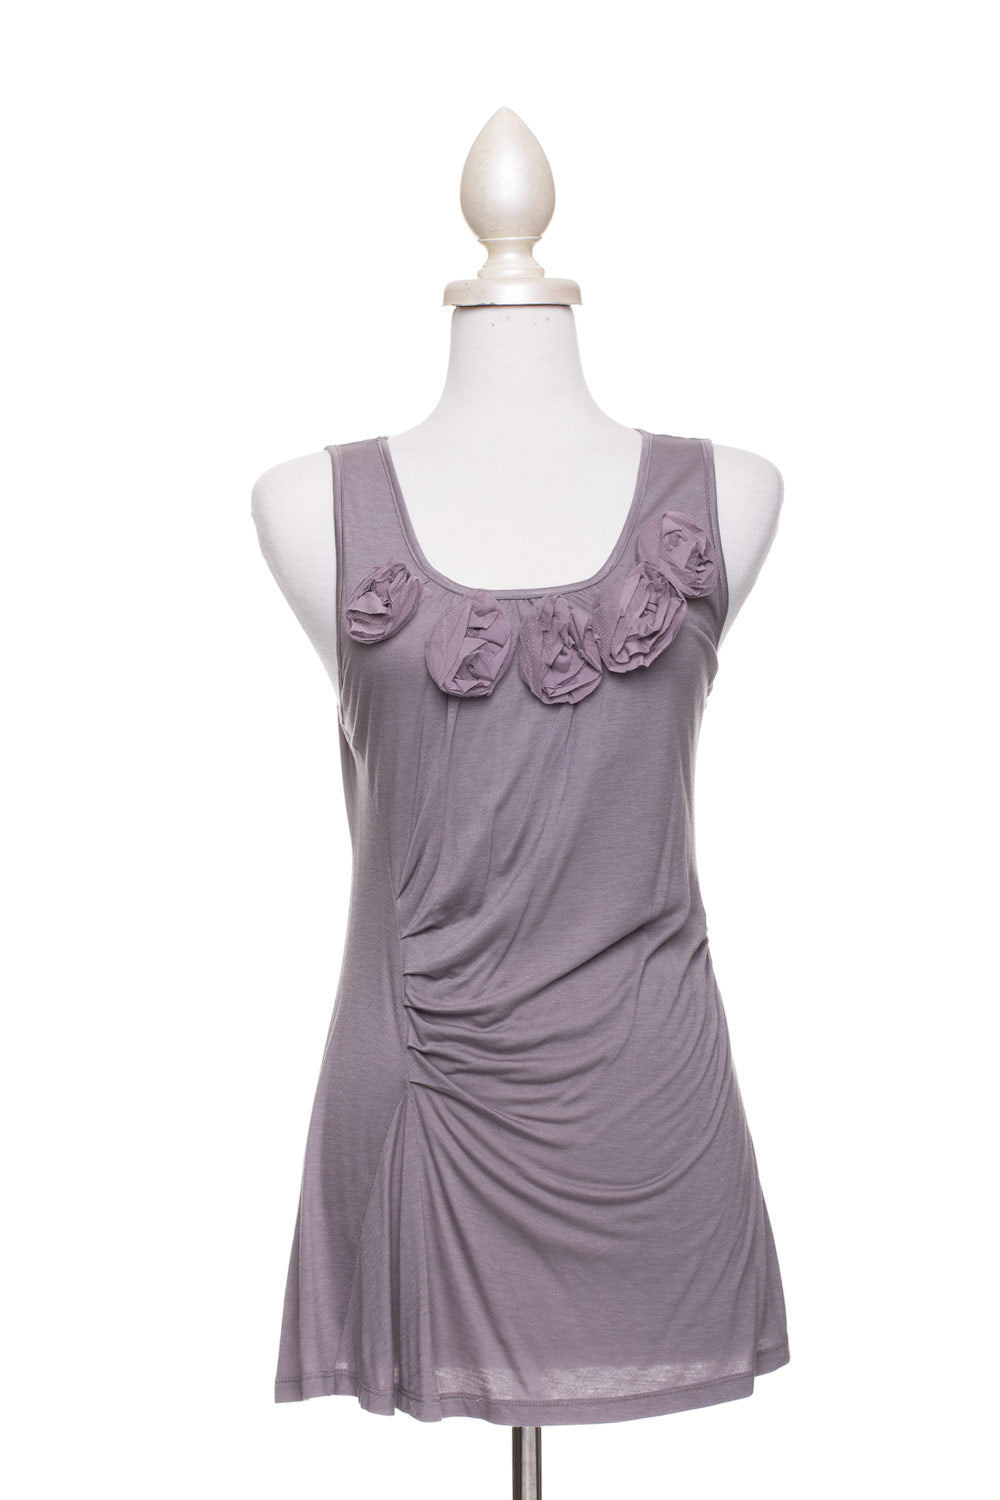 Type 2 Rose Festival Top